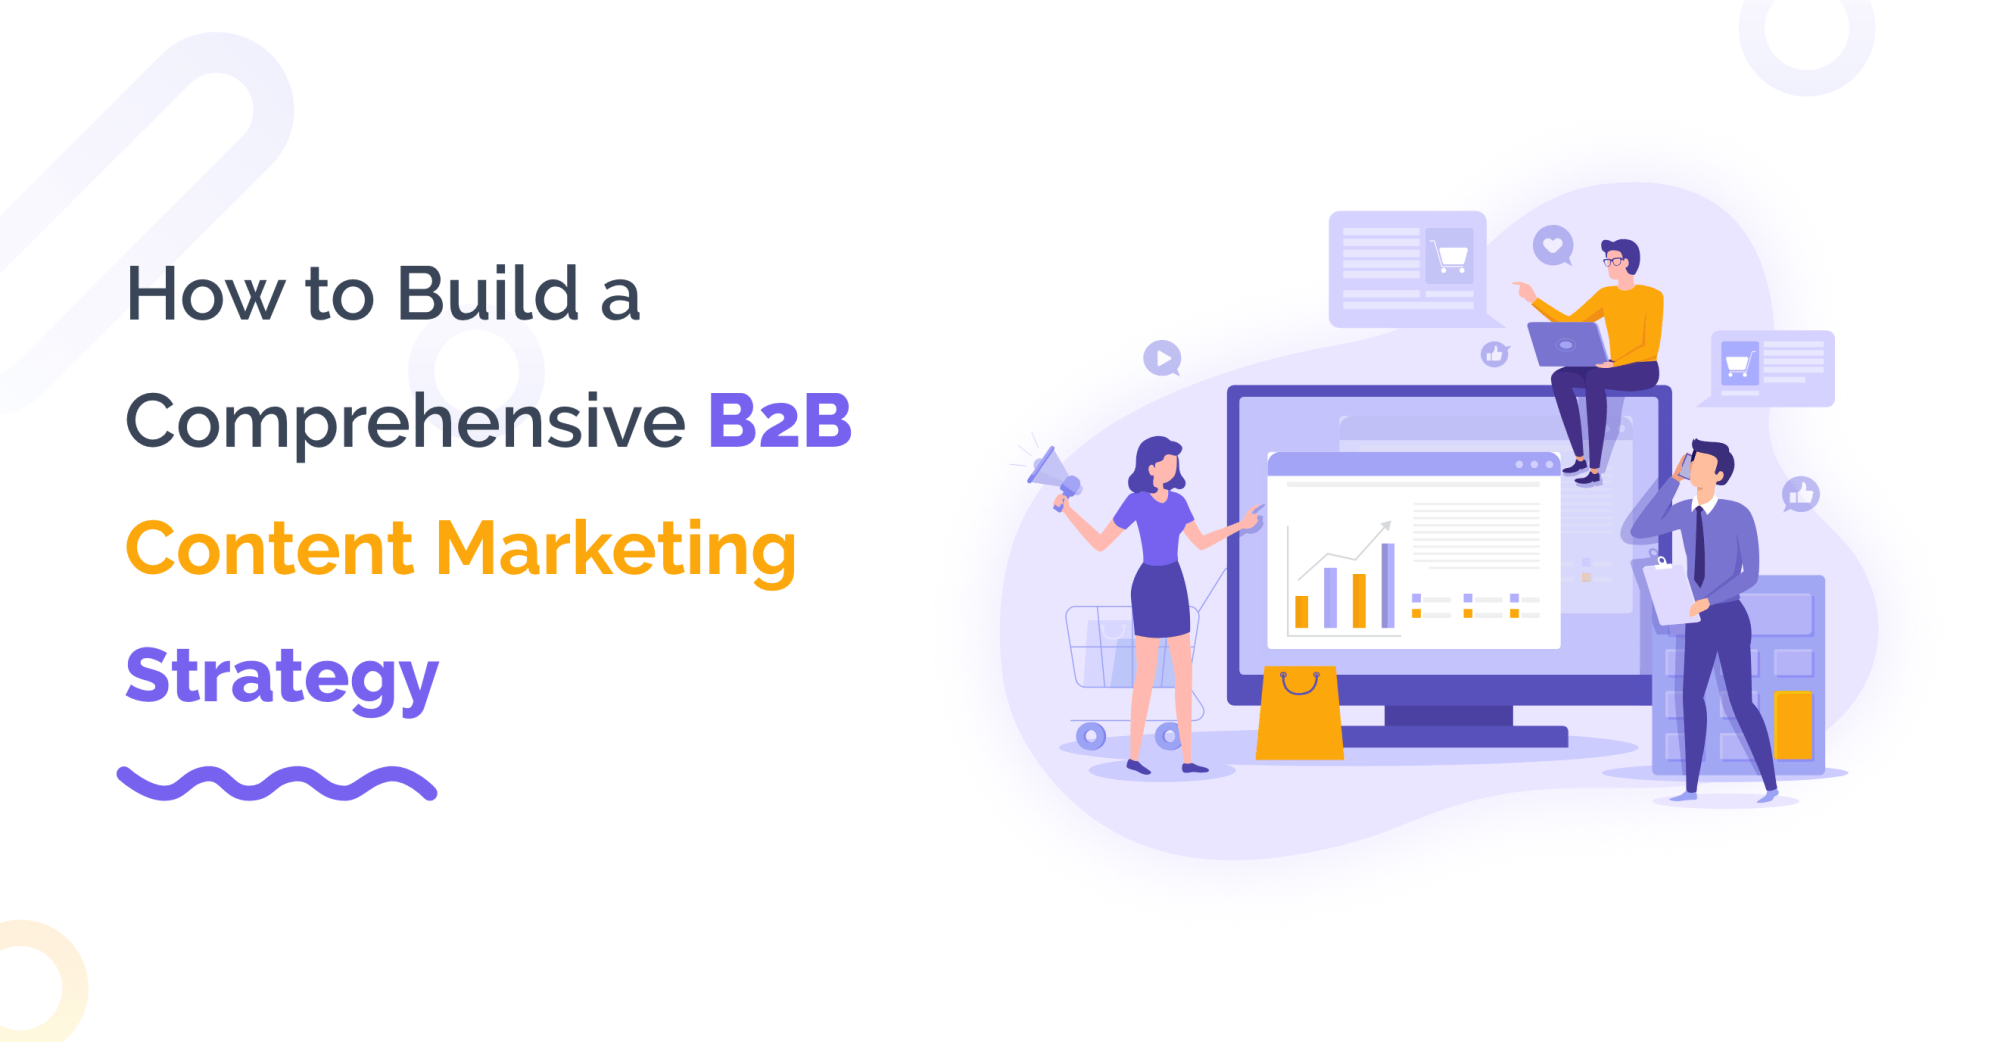 B2B content marketing - ContentStudio